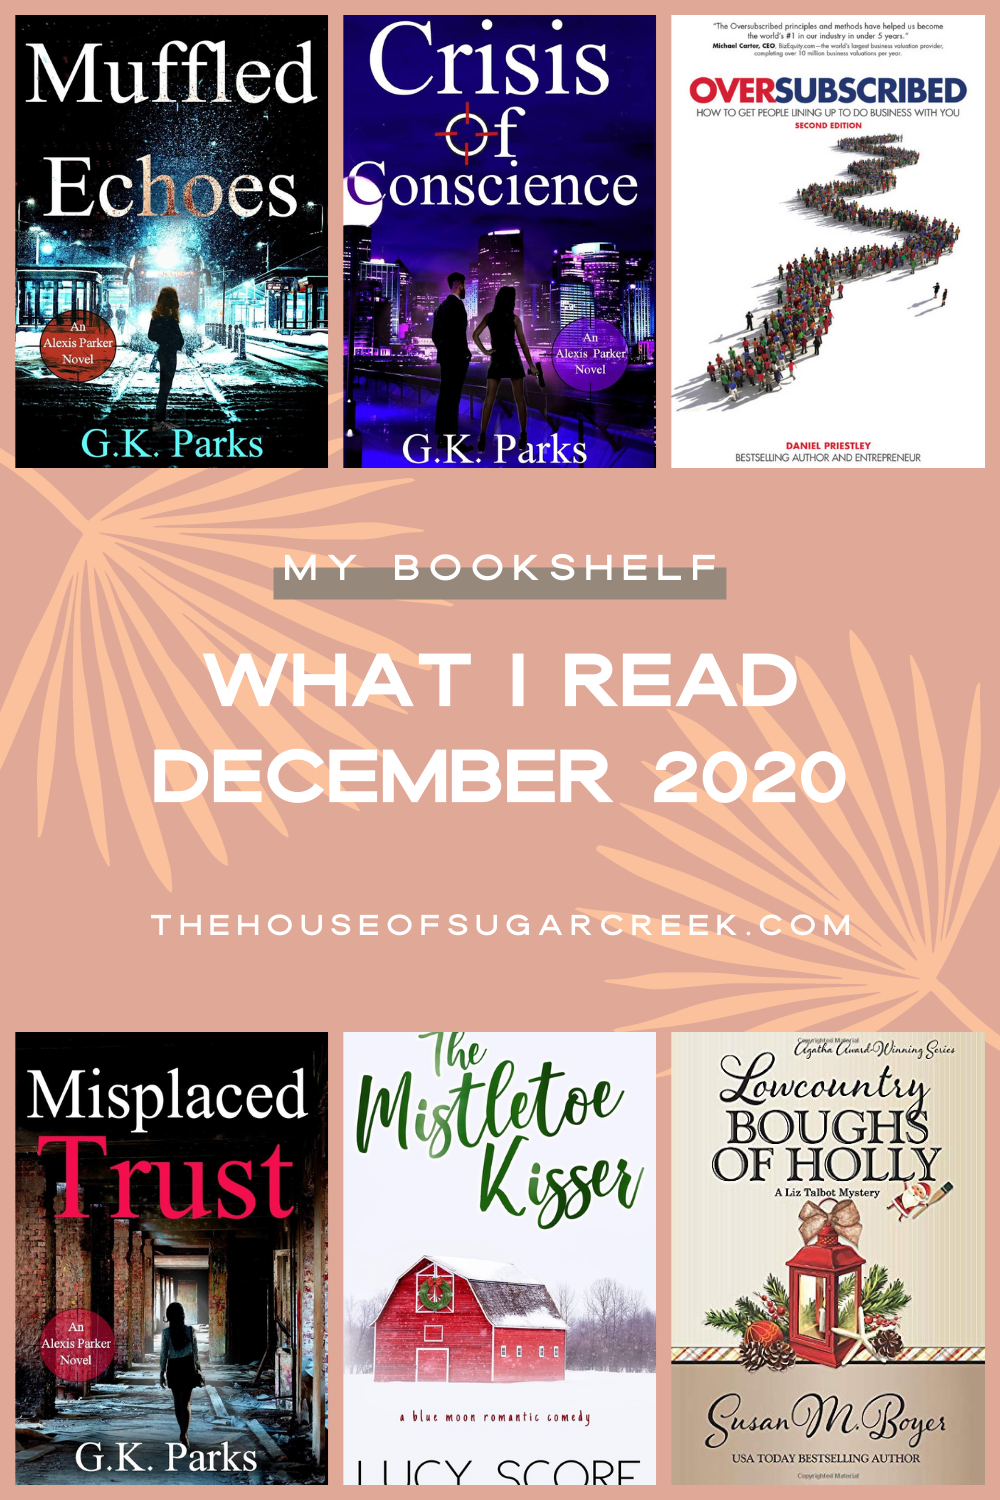 What I Read - December 2020